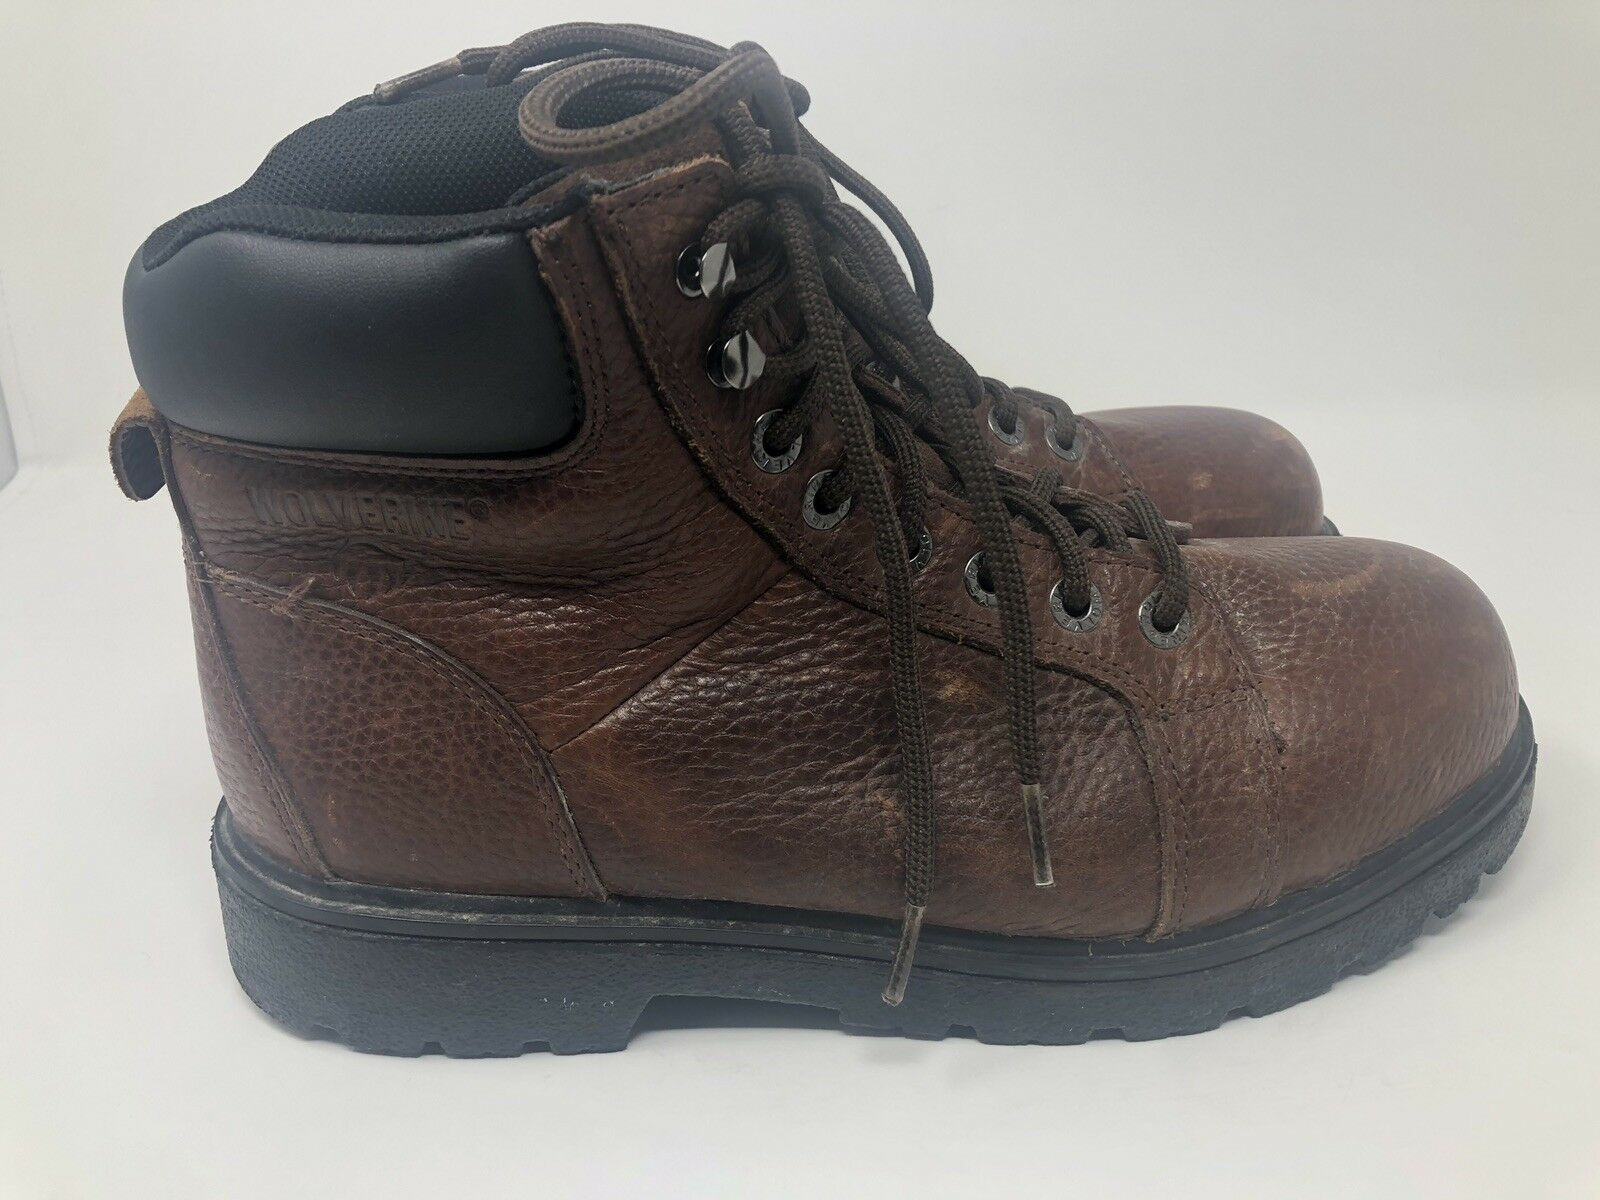 Wolverine Steel Toe Ankle Work and Safety Boots Size 9M Brown W02174